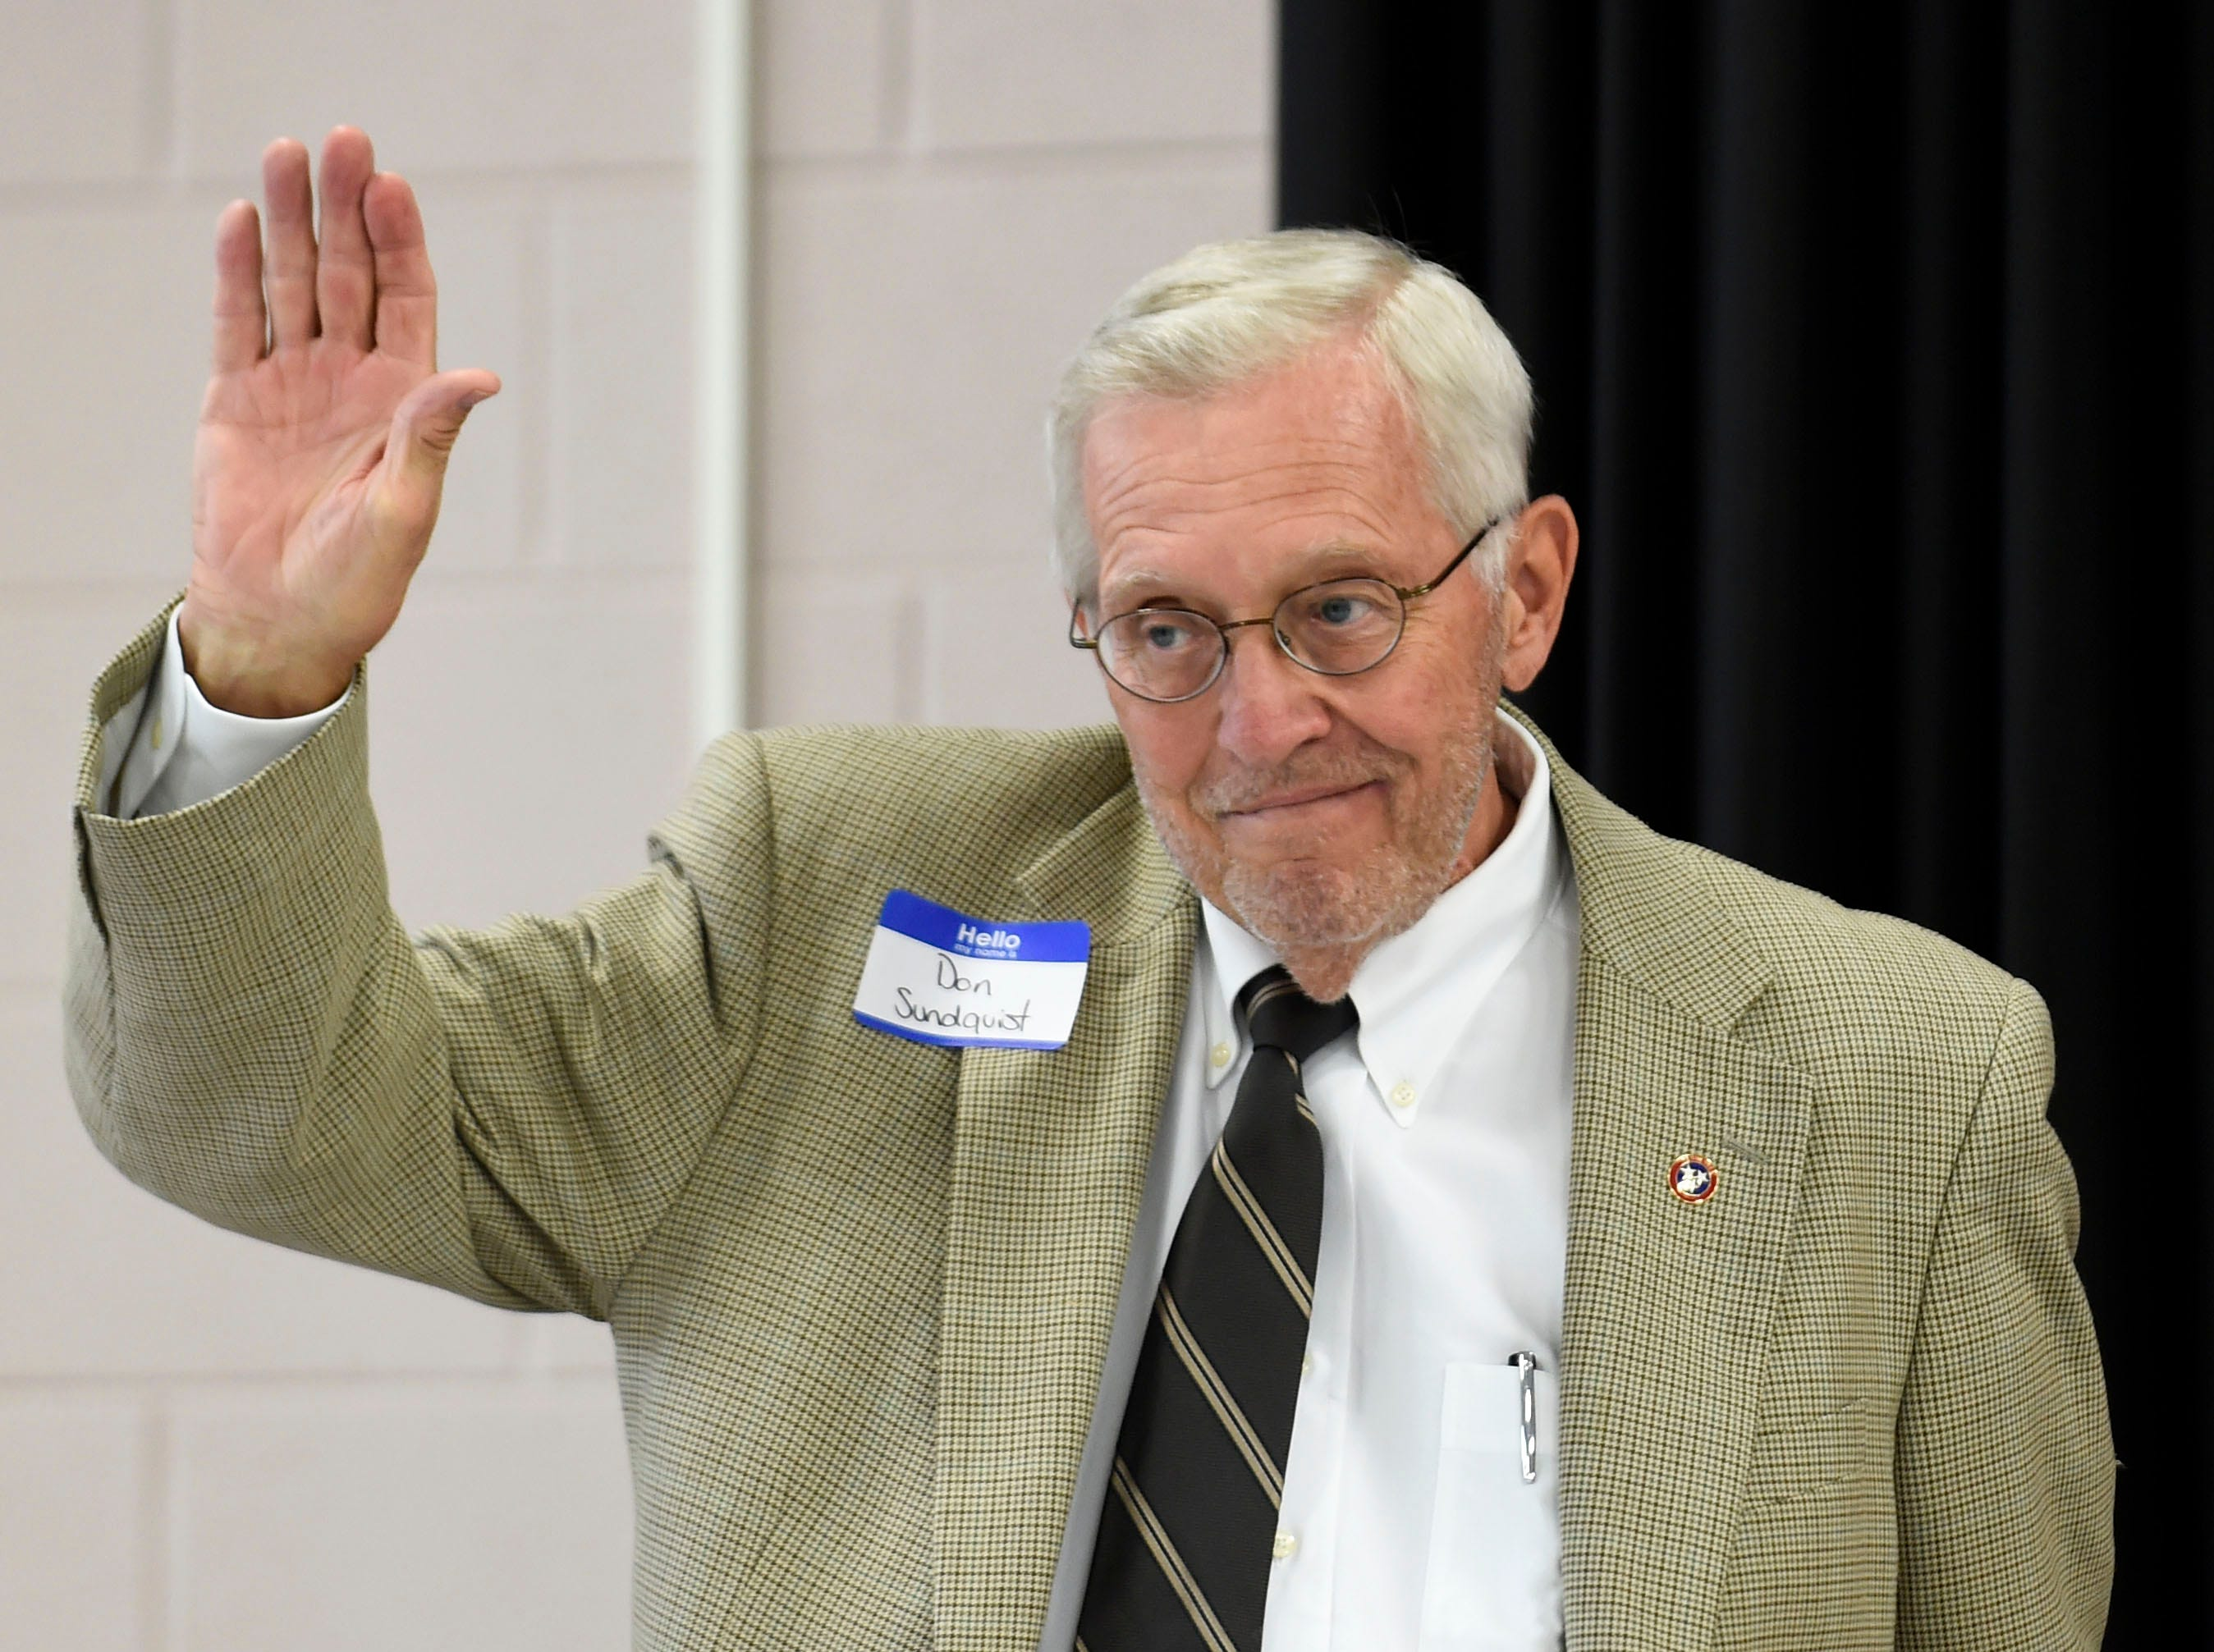 Former Tennessee Gov. Don Sundquist is introduced during the Lincoln Reagan Dinner at Campbell County High School in LaFollette, Saturday, July 12, 2014.